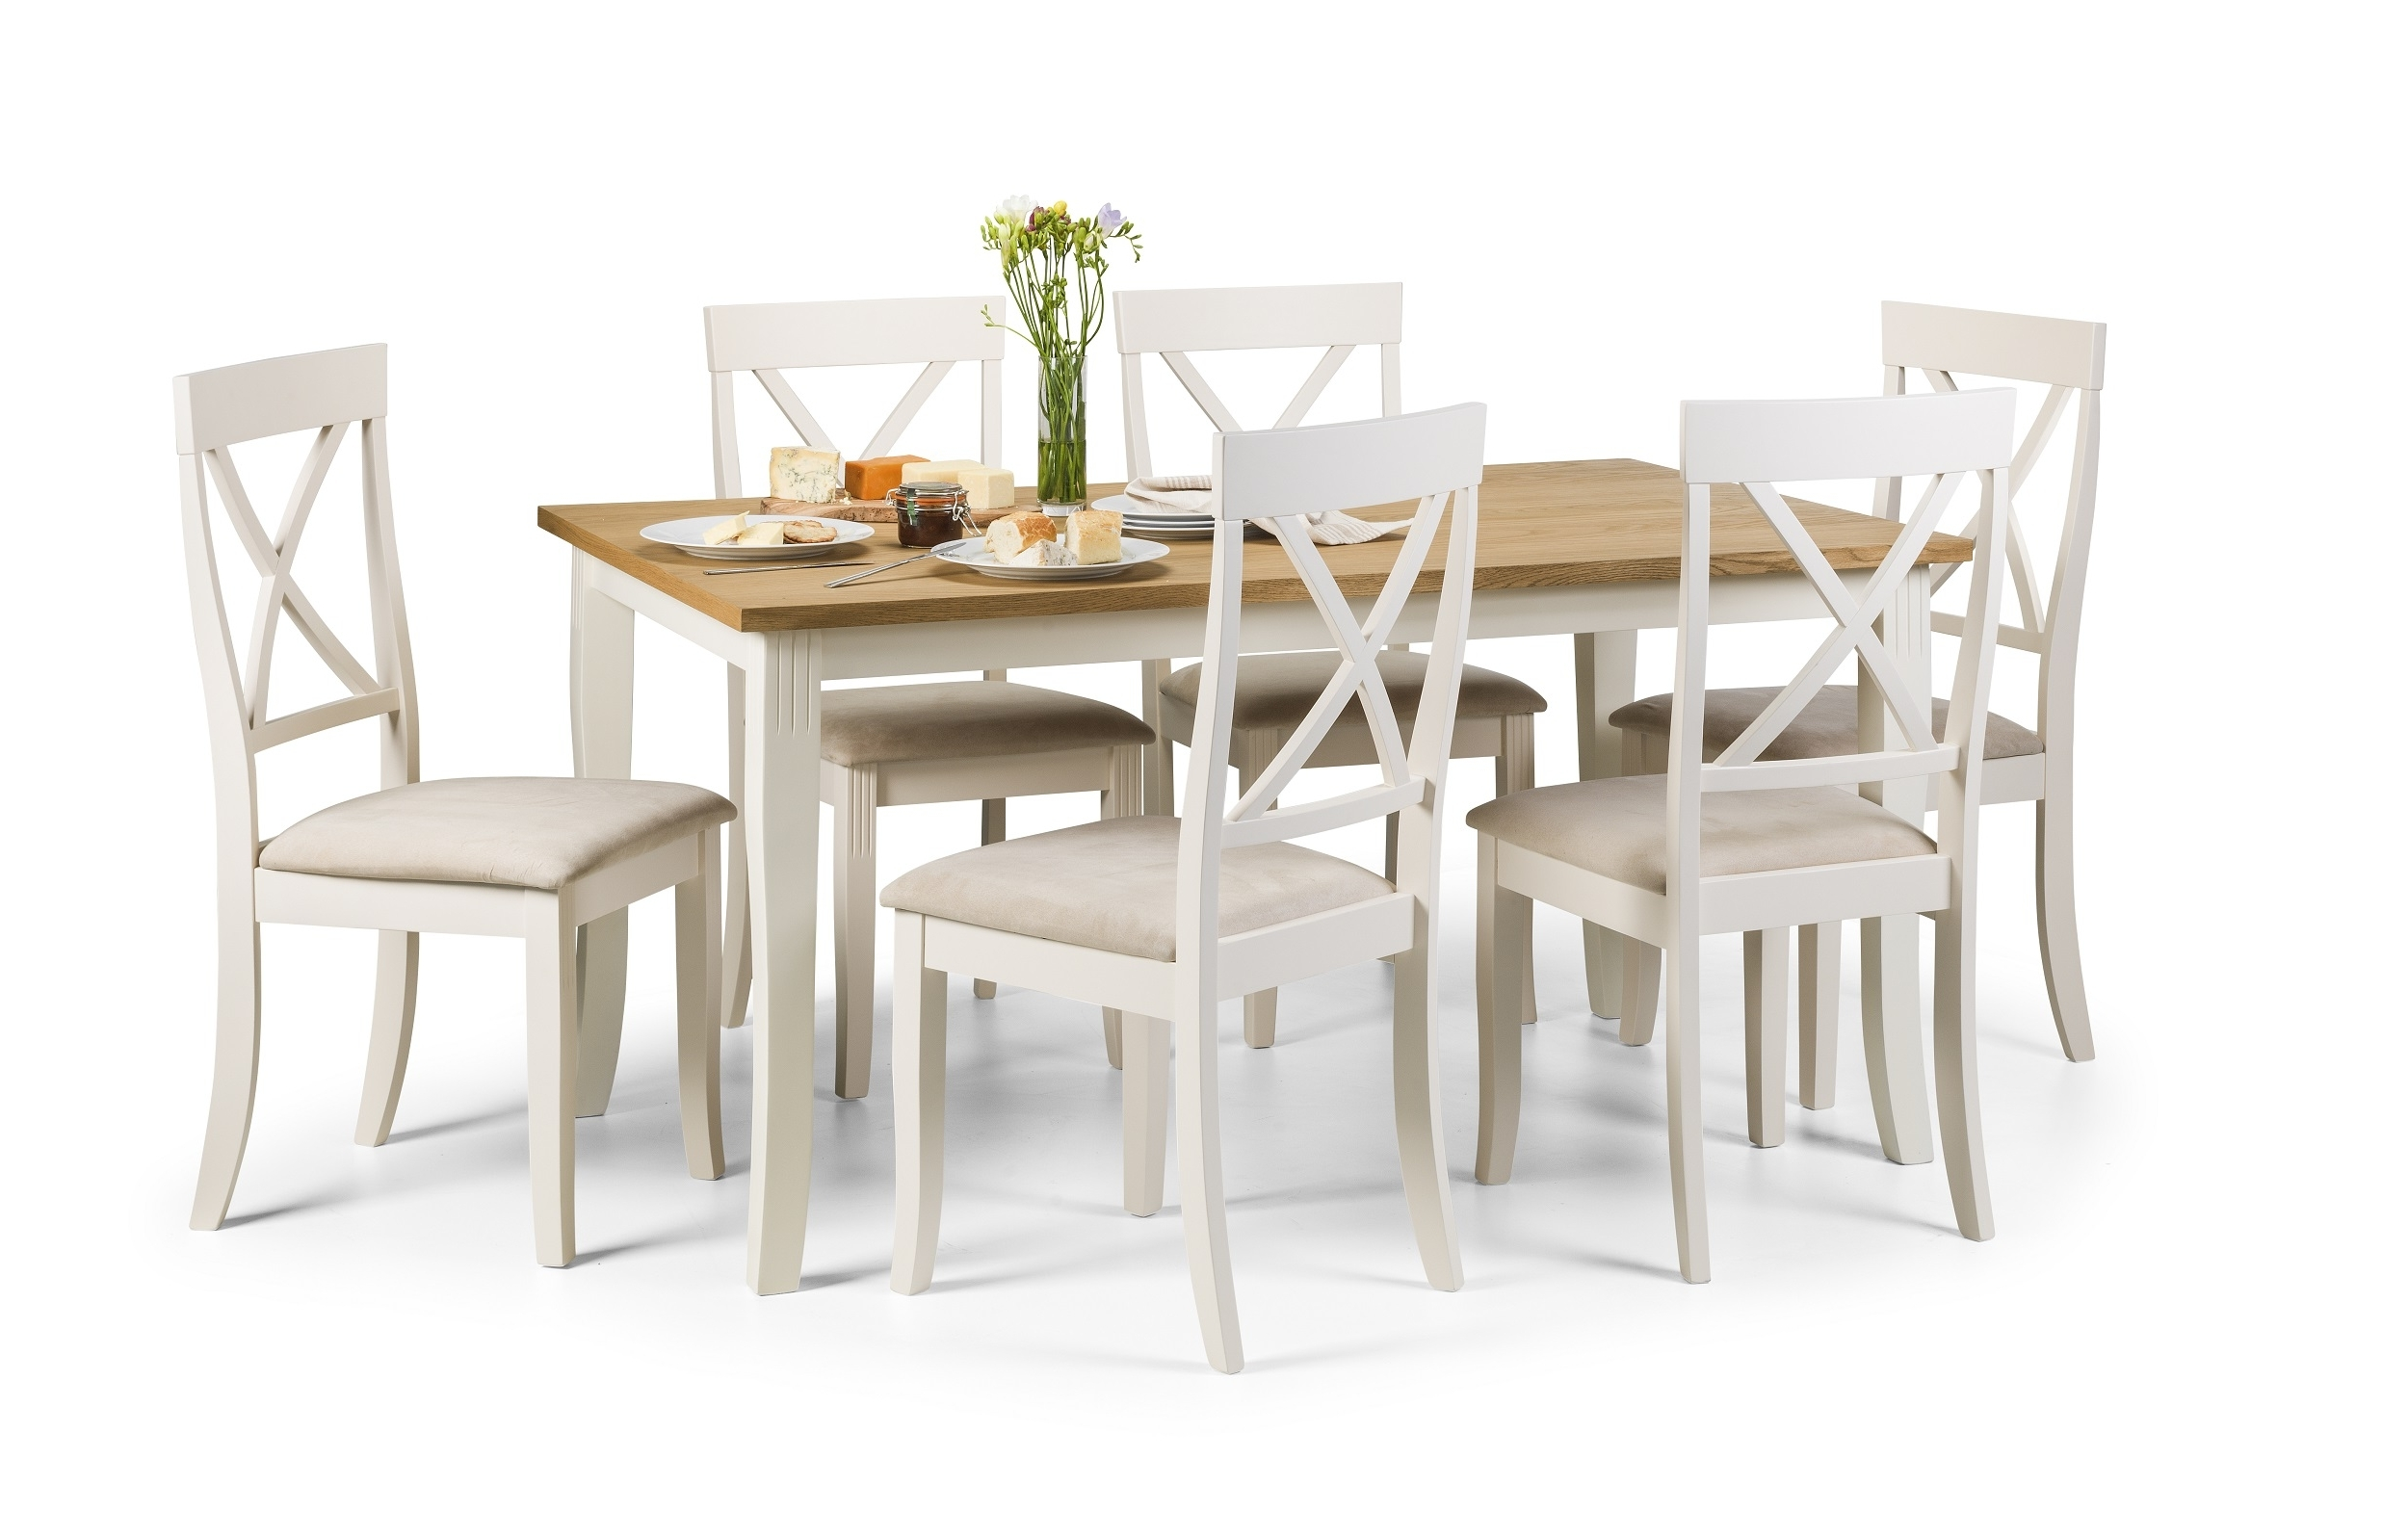 Dining Tables And 6 Chairs With Well Known Plymouth Dining Table + 6 Chairs – Thanet Beds (View 19 of 25)